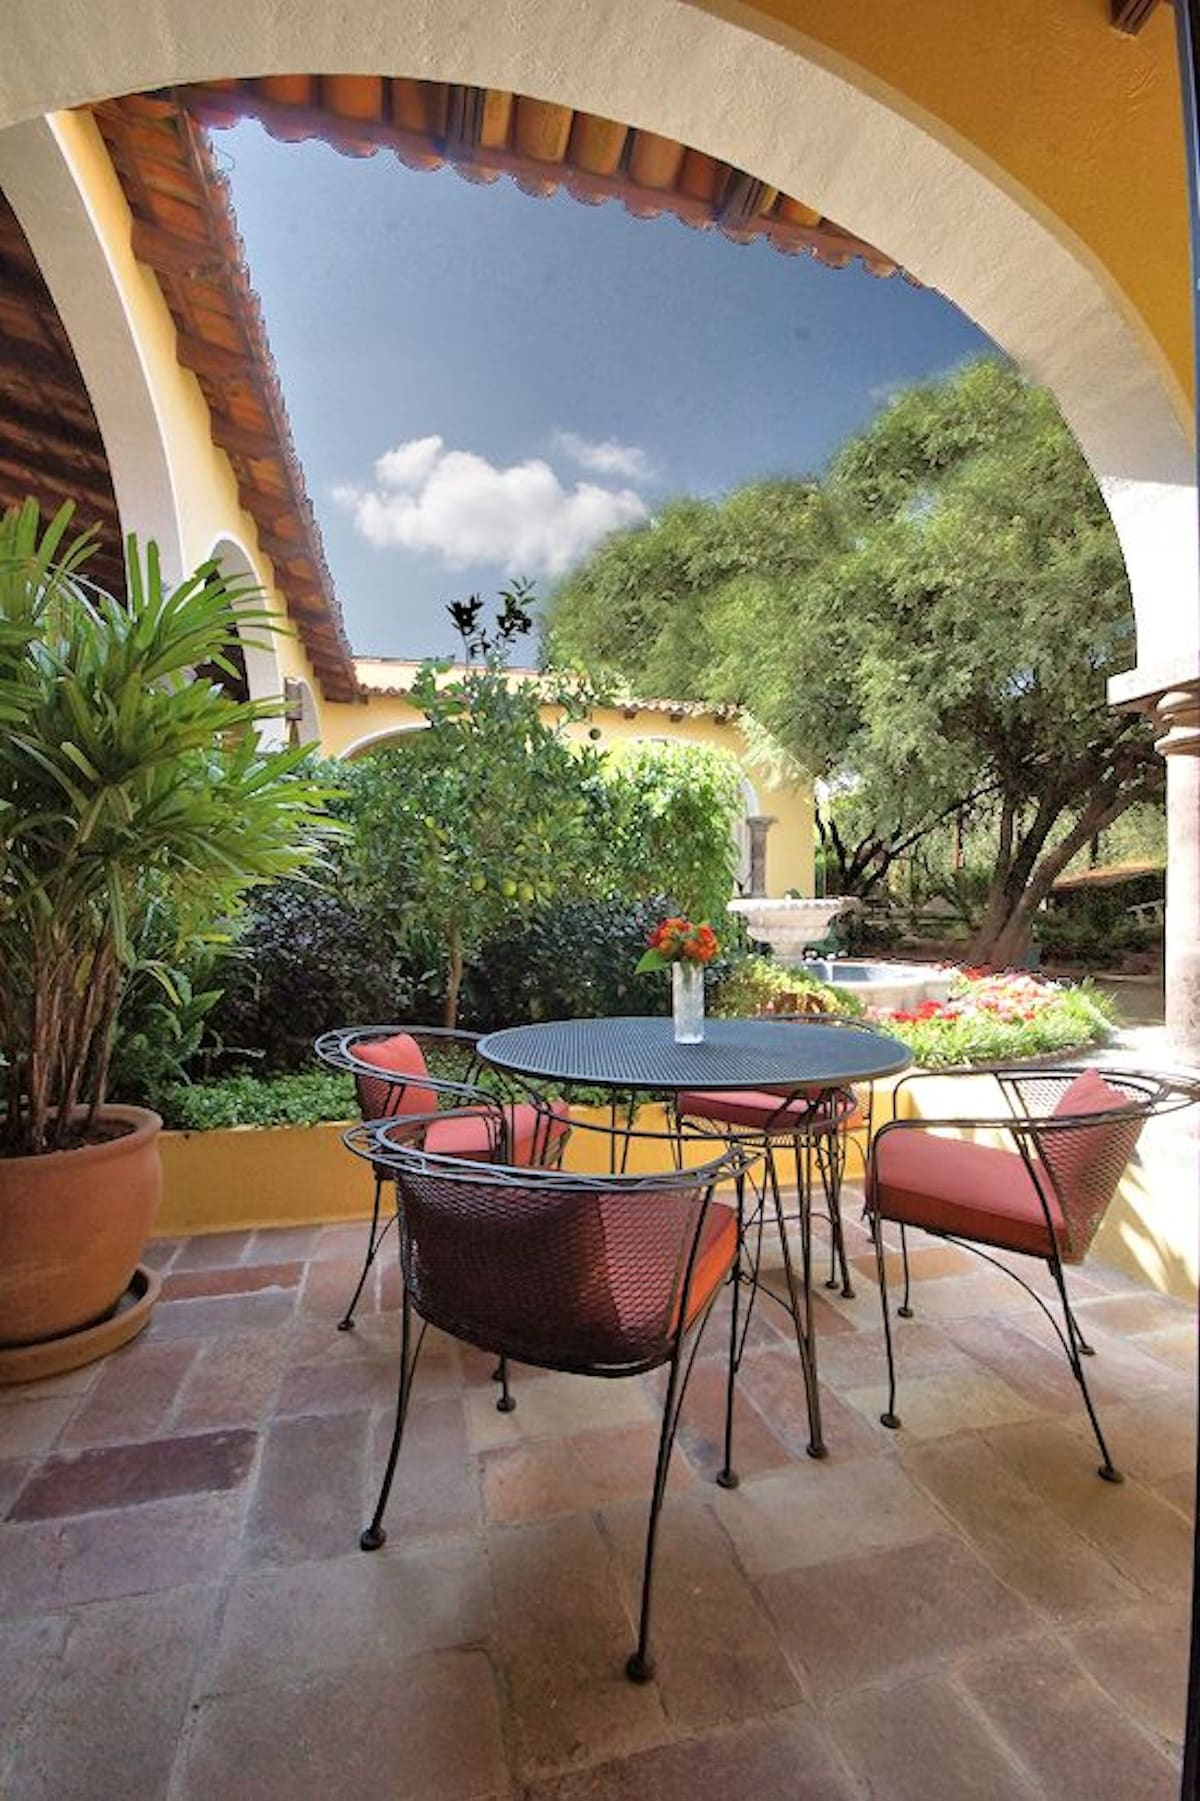 Enjoy reading, checking your email, taking some meals, refreshments, and conversation with friends and family on this private patio.  Enjoy observing the many birds that frequent the property with its 5 large mesquite trees.